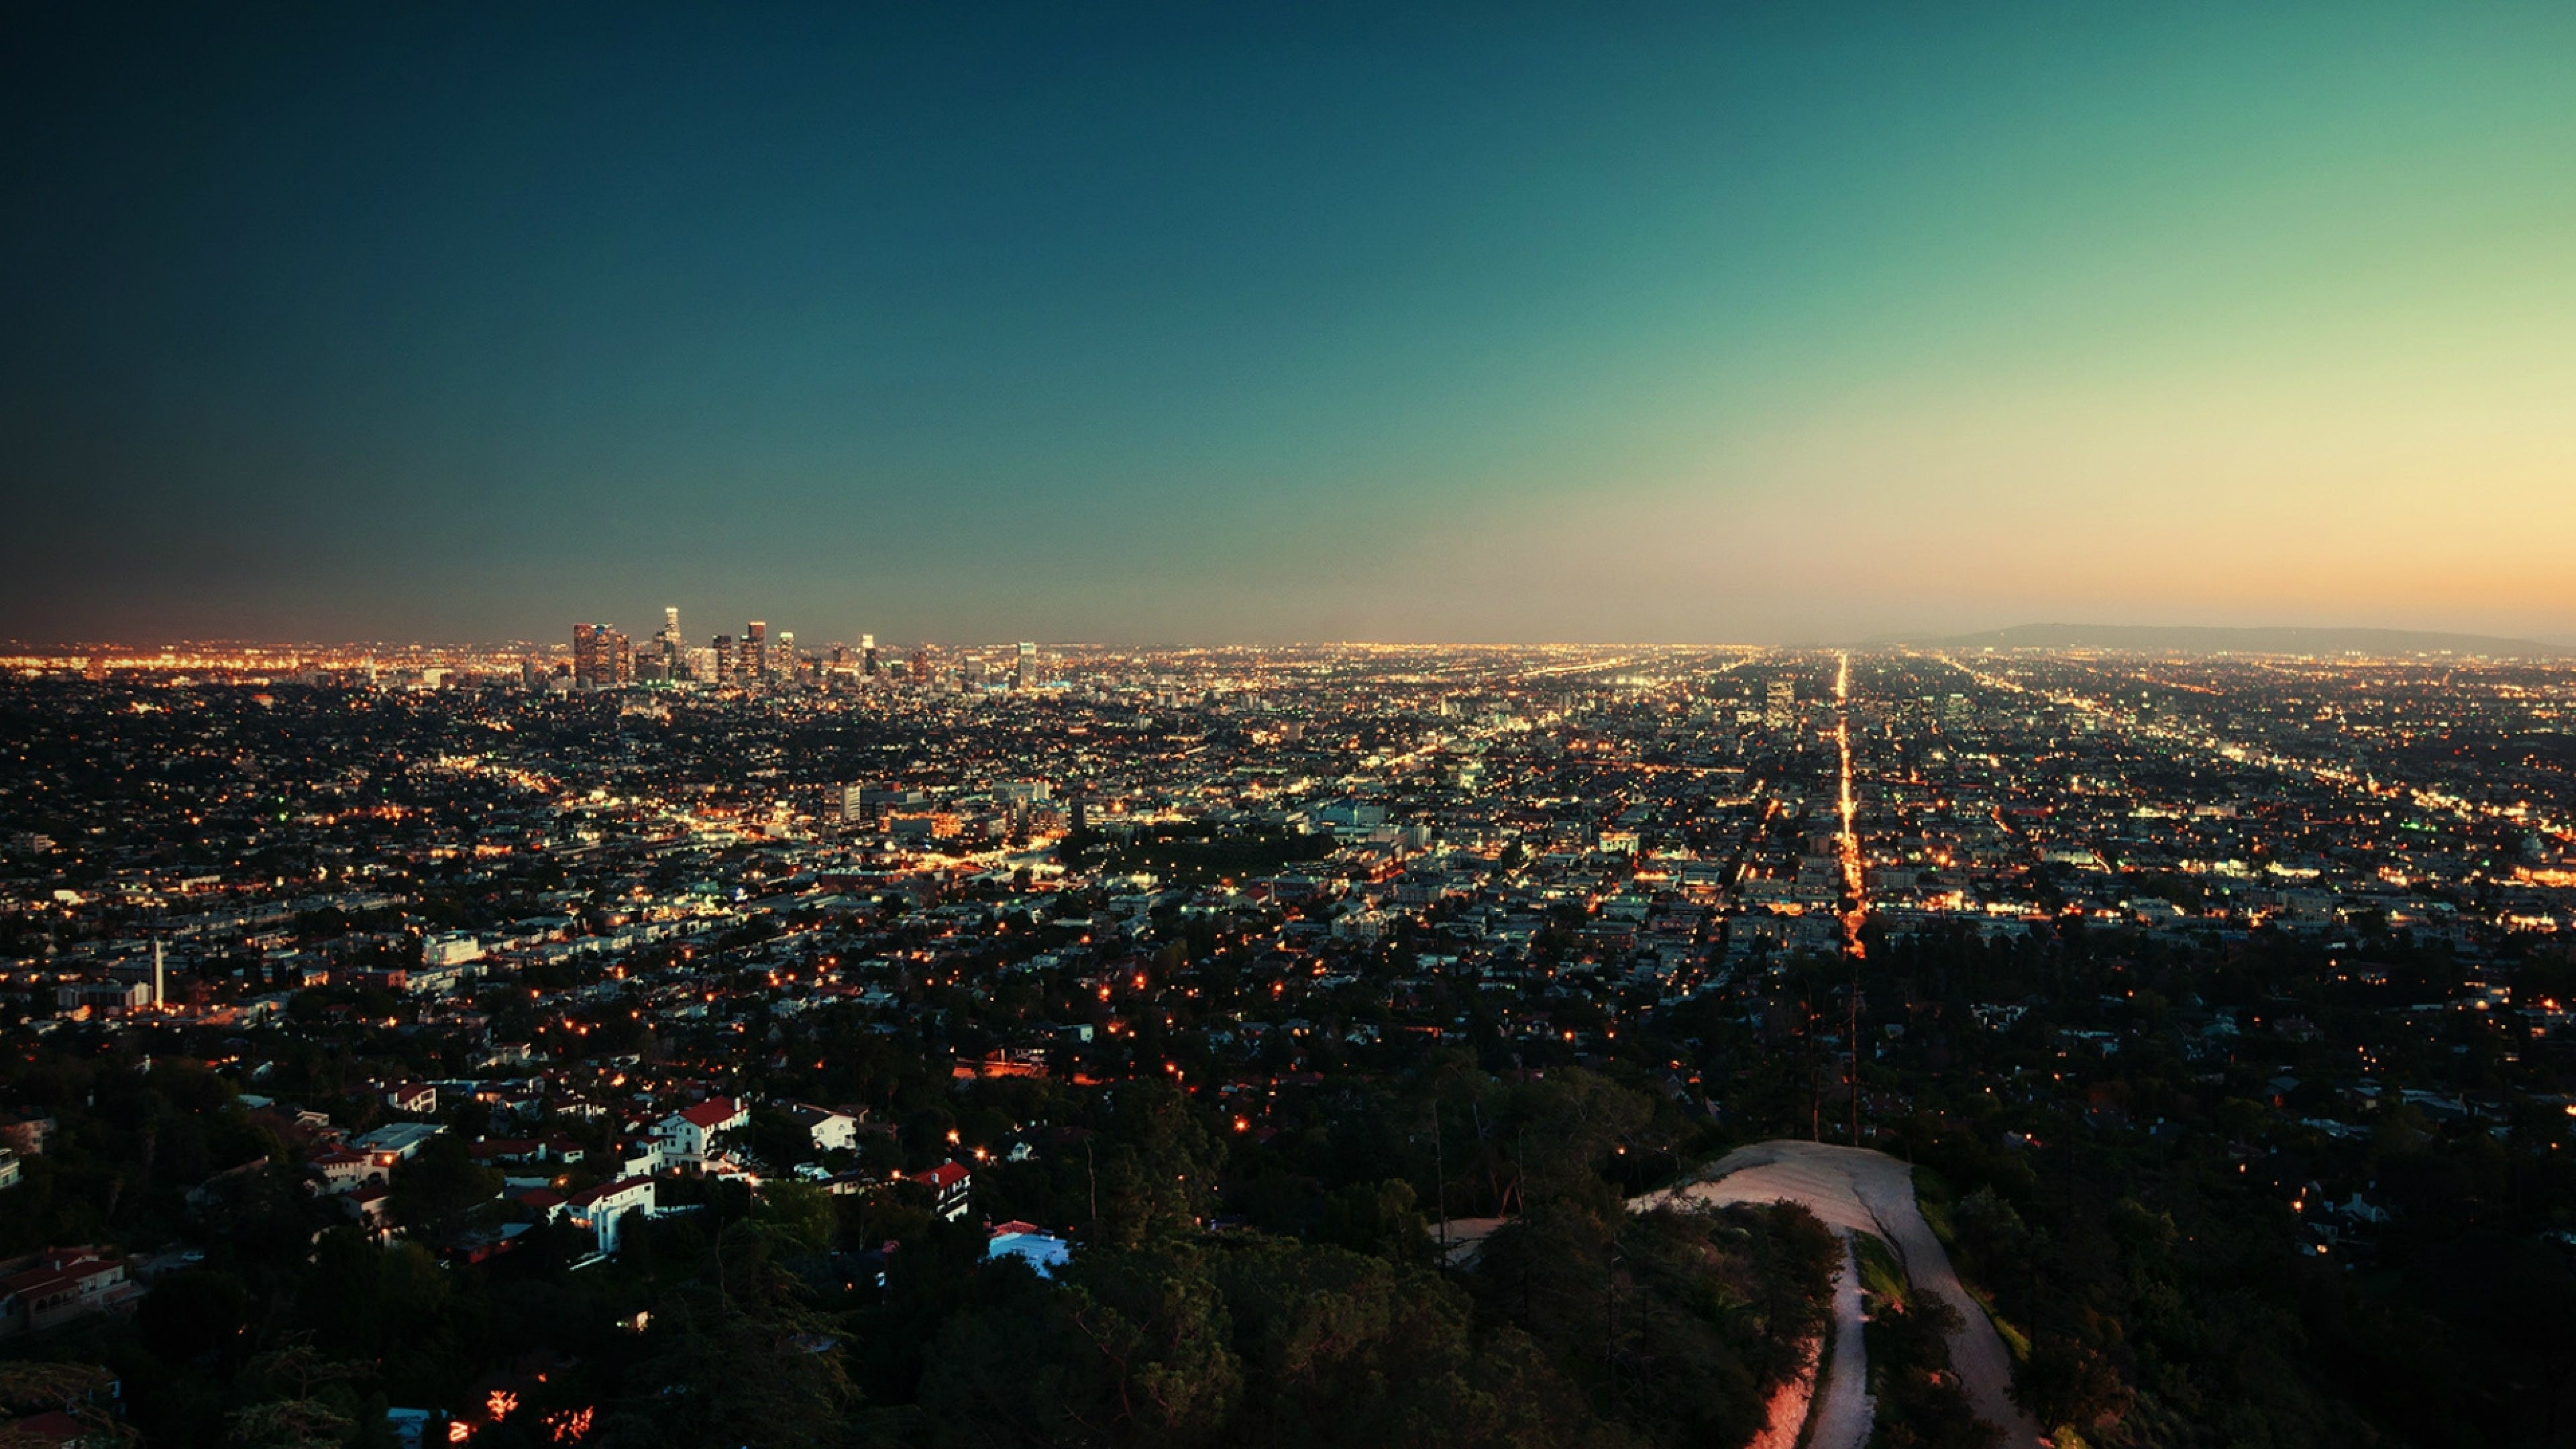 los angeles 4k wallpaper - wallpapersafari | android | pinterest